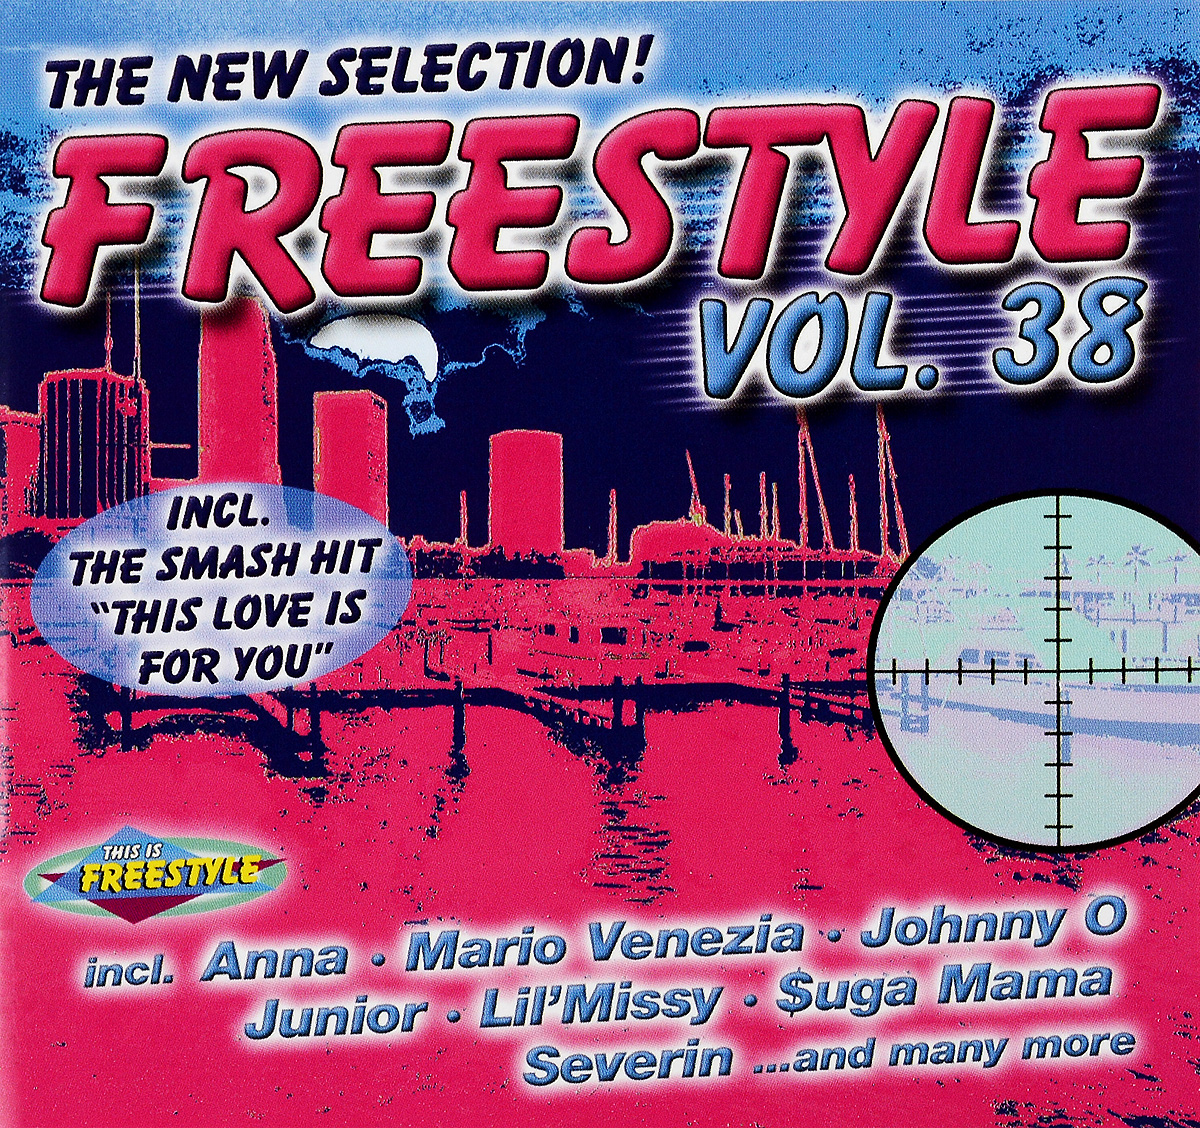 Toniac,Ники Дэниэлс,Junior,Марио Венециа,Severin,Johnny O.,Tobak,Lil'missy,Maveee,Miss Kay The New Selection! Freestyle. Vol. 38 johnny o rookie severin jayda soft touch лила грейс roxanna shineaz junior tiara suga mama x on jaylez maximnoise ники дэниэлс duap mc ричи сантьяго freestyle vol 40 best of final edition 3 cd